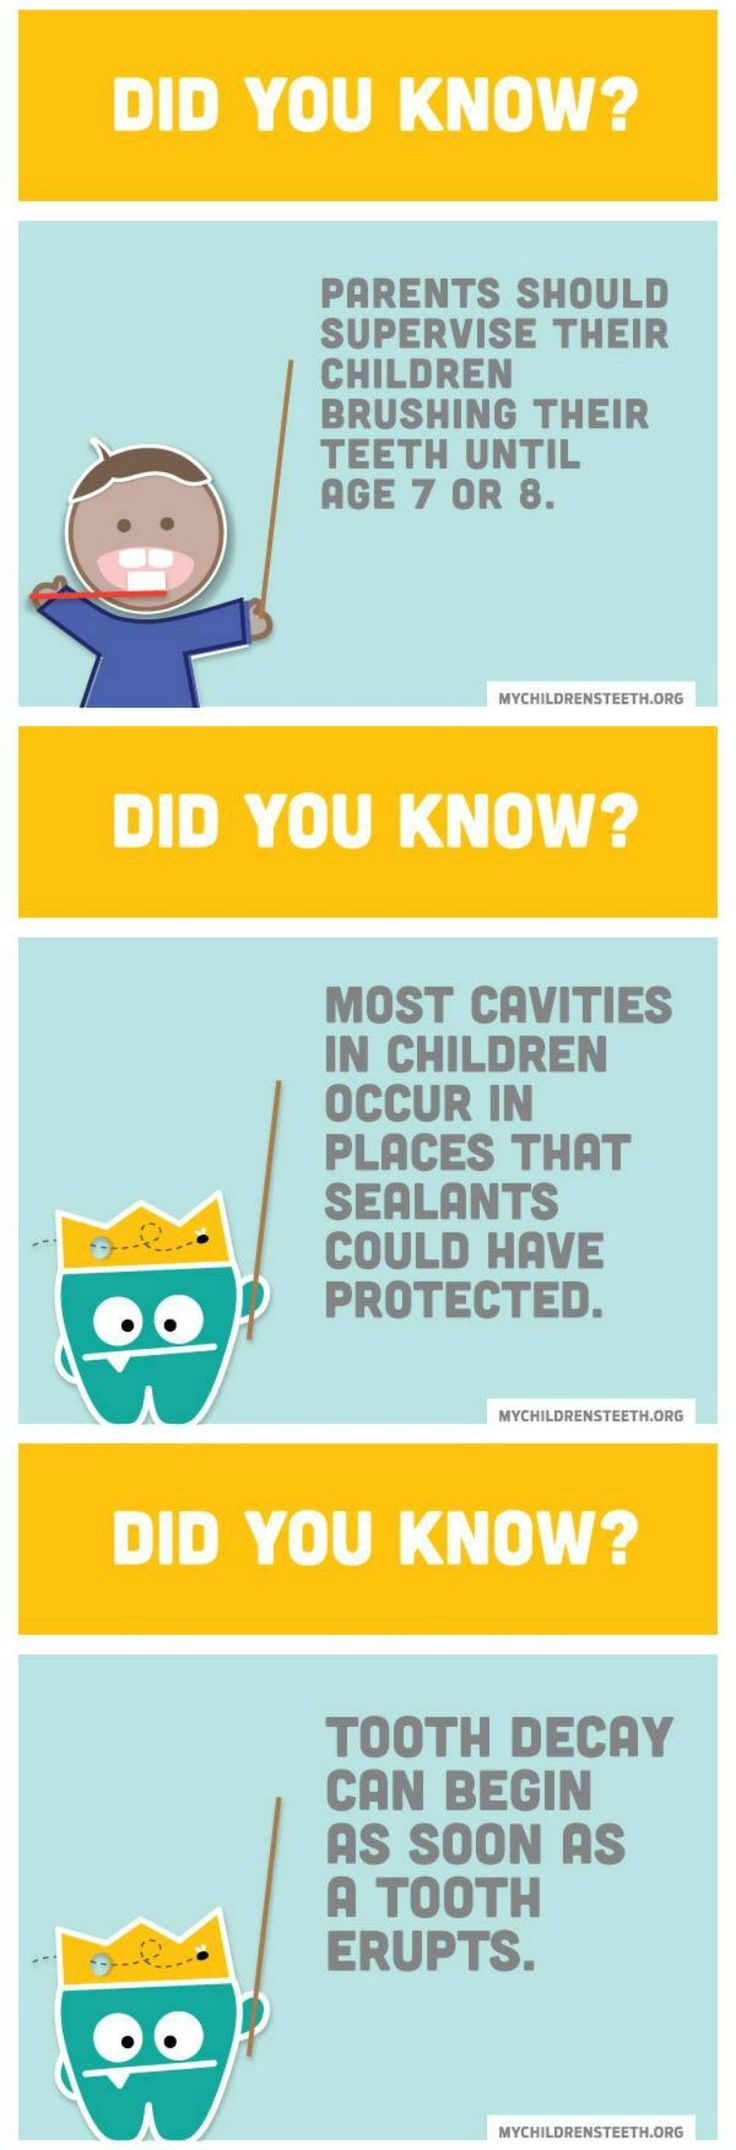 Facts about childrens dental health and how kids can avoid tooth decay from the The American Academy of Pediatric Dentistry.